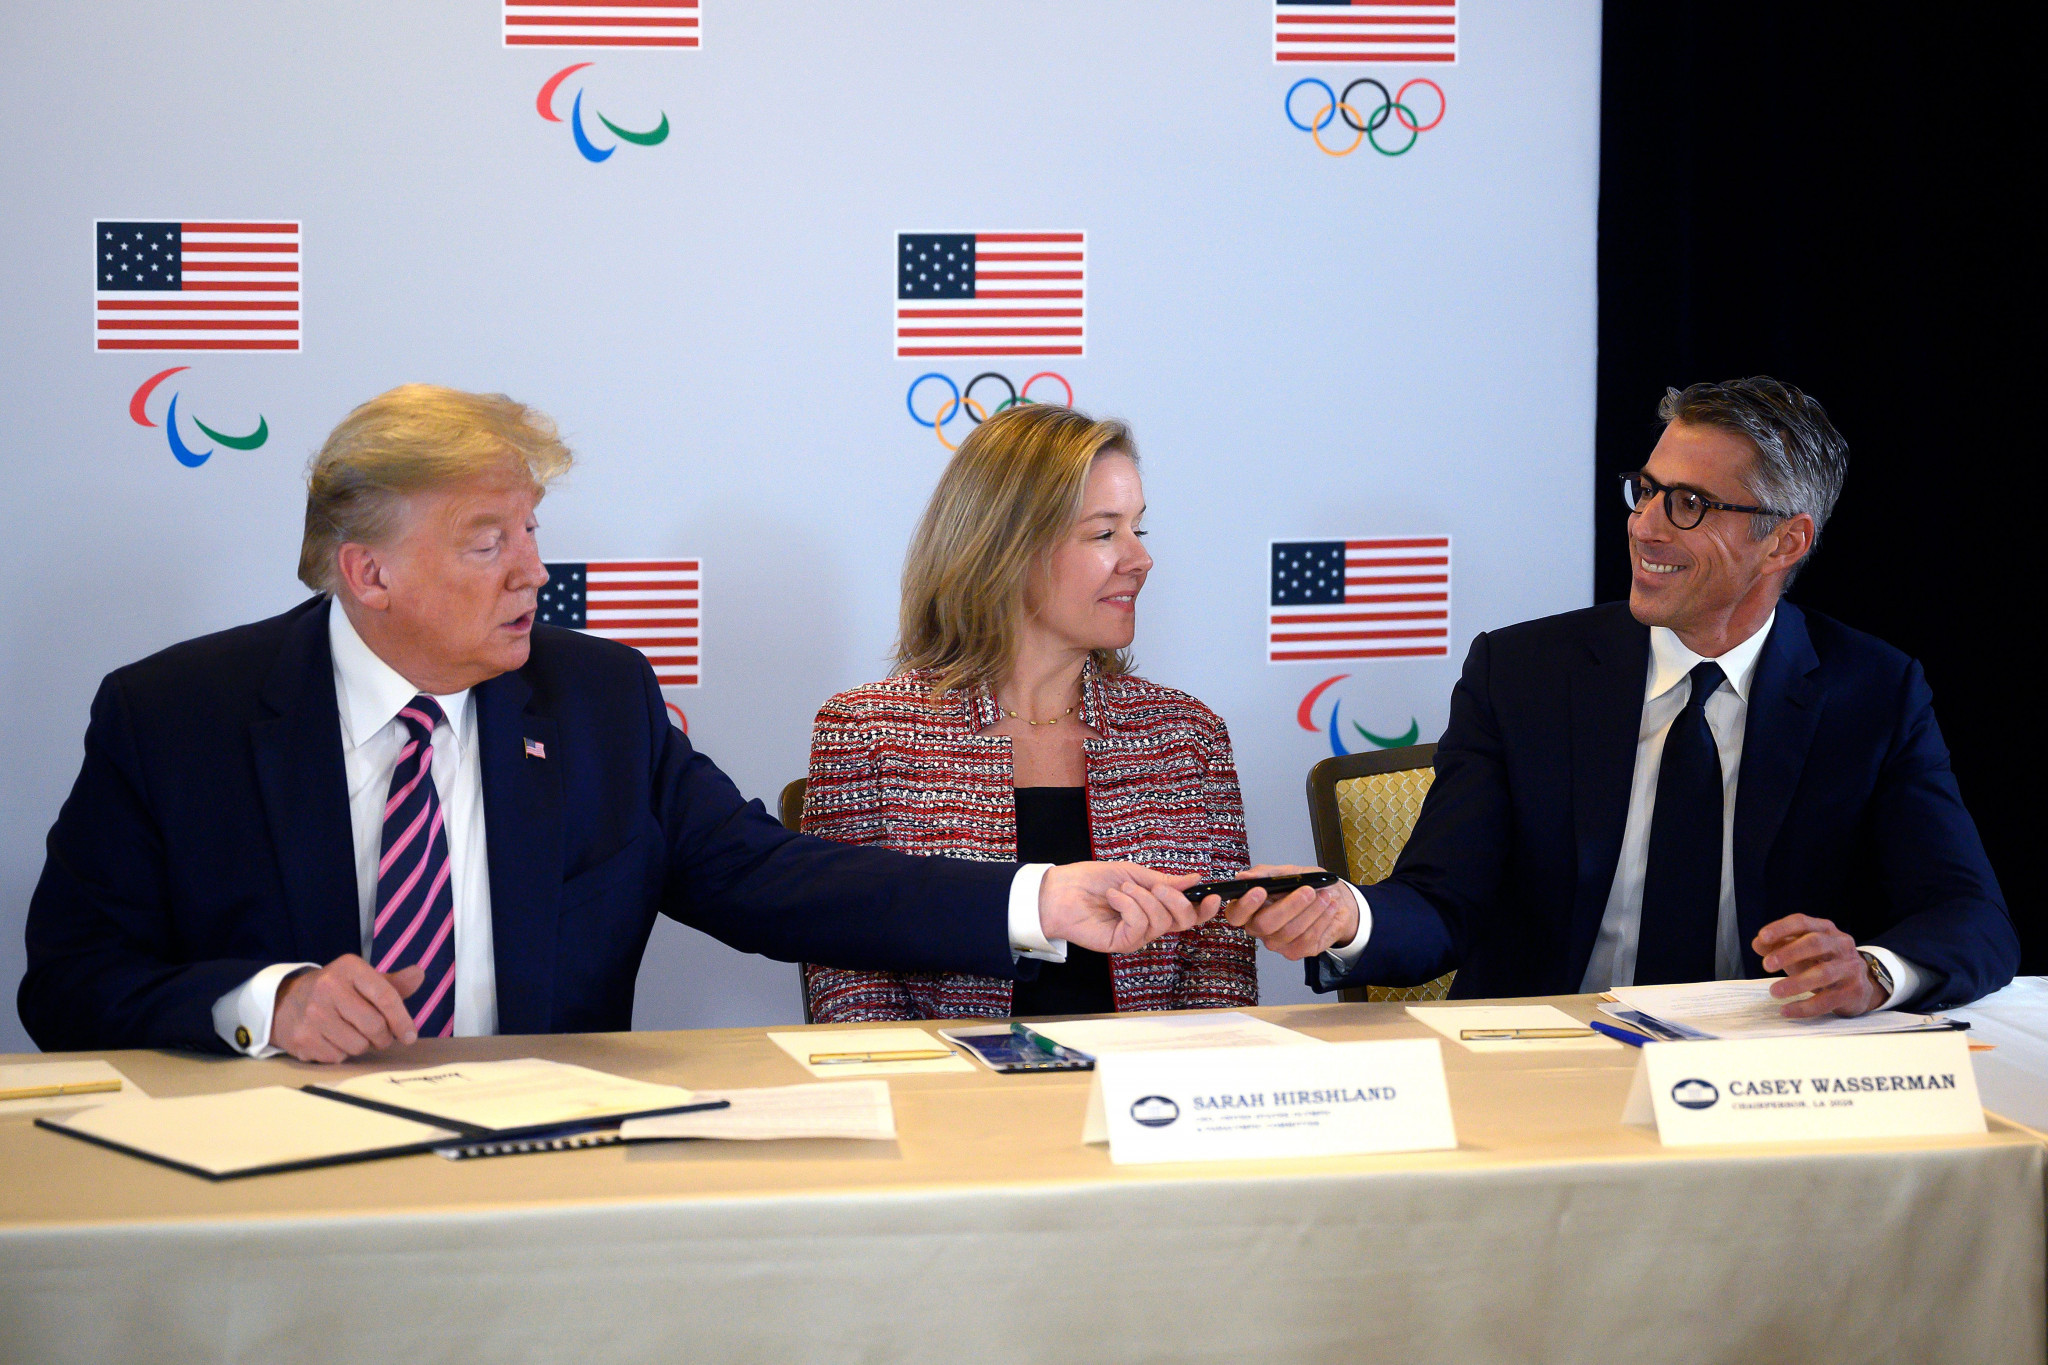 Los Angeles 2028 chairperson Casey Wasserman, right, with American President Donald Trump, left, and United States Olympic and Paralympic Committee chief executive chief executive Sarah Hirshland ©Getty Images